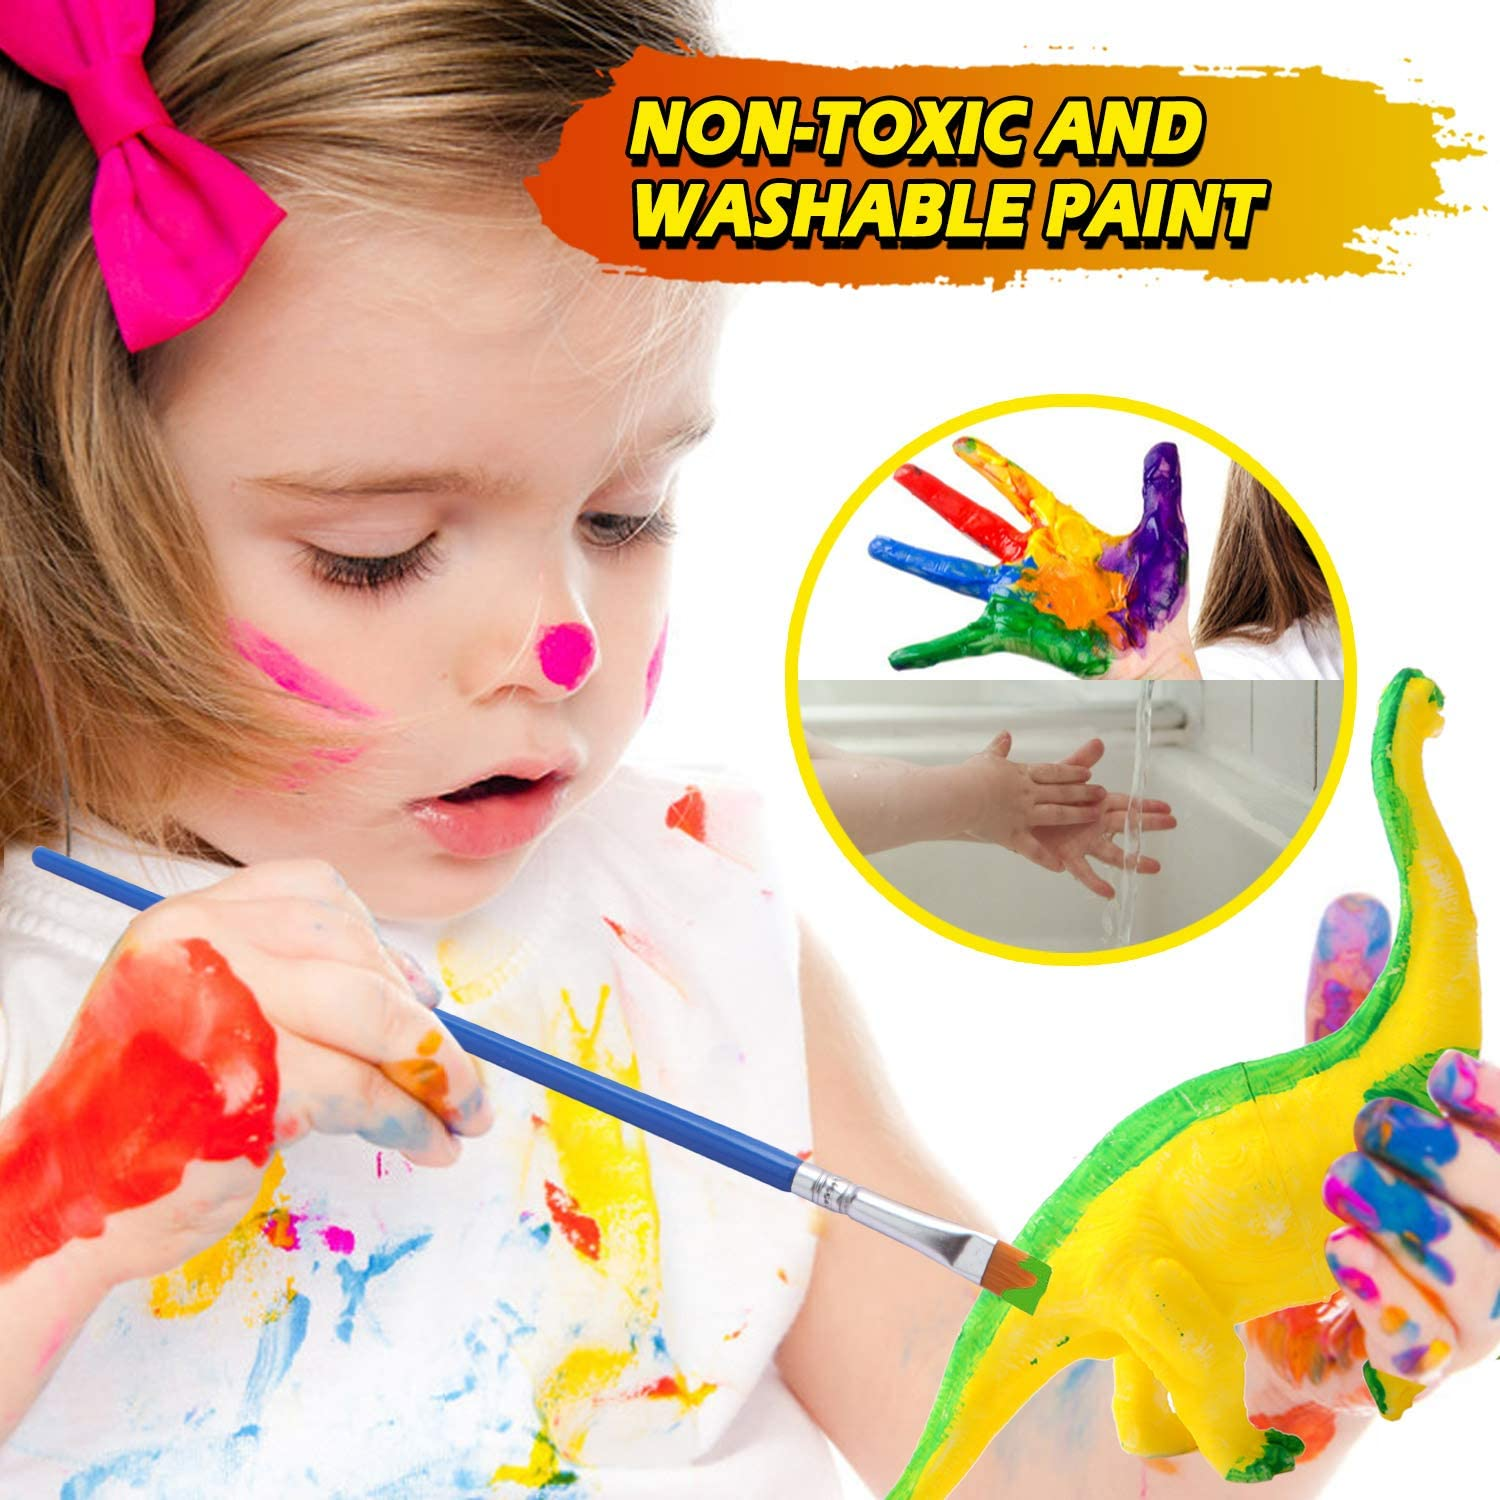 Dinosaurs Toys Art and Craft Supplies Party Favors for Kids Activities Age 4 5 6 7 8 Years Old Kids Crafts and Arts Set Dinosaur Painting Kit for Boys /& Girls Ages 6-12 Crate Your Dinosaur World